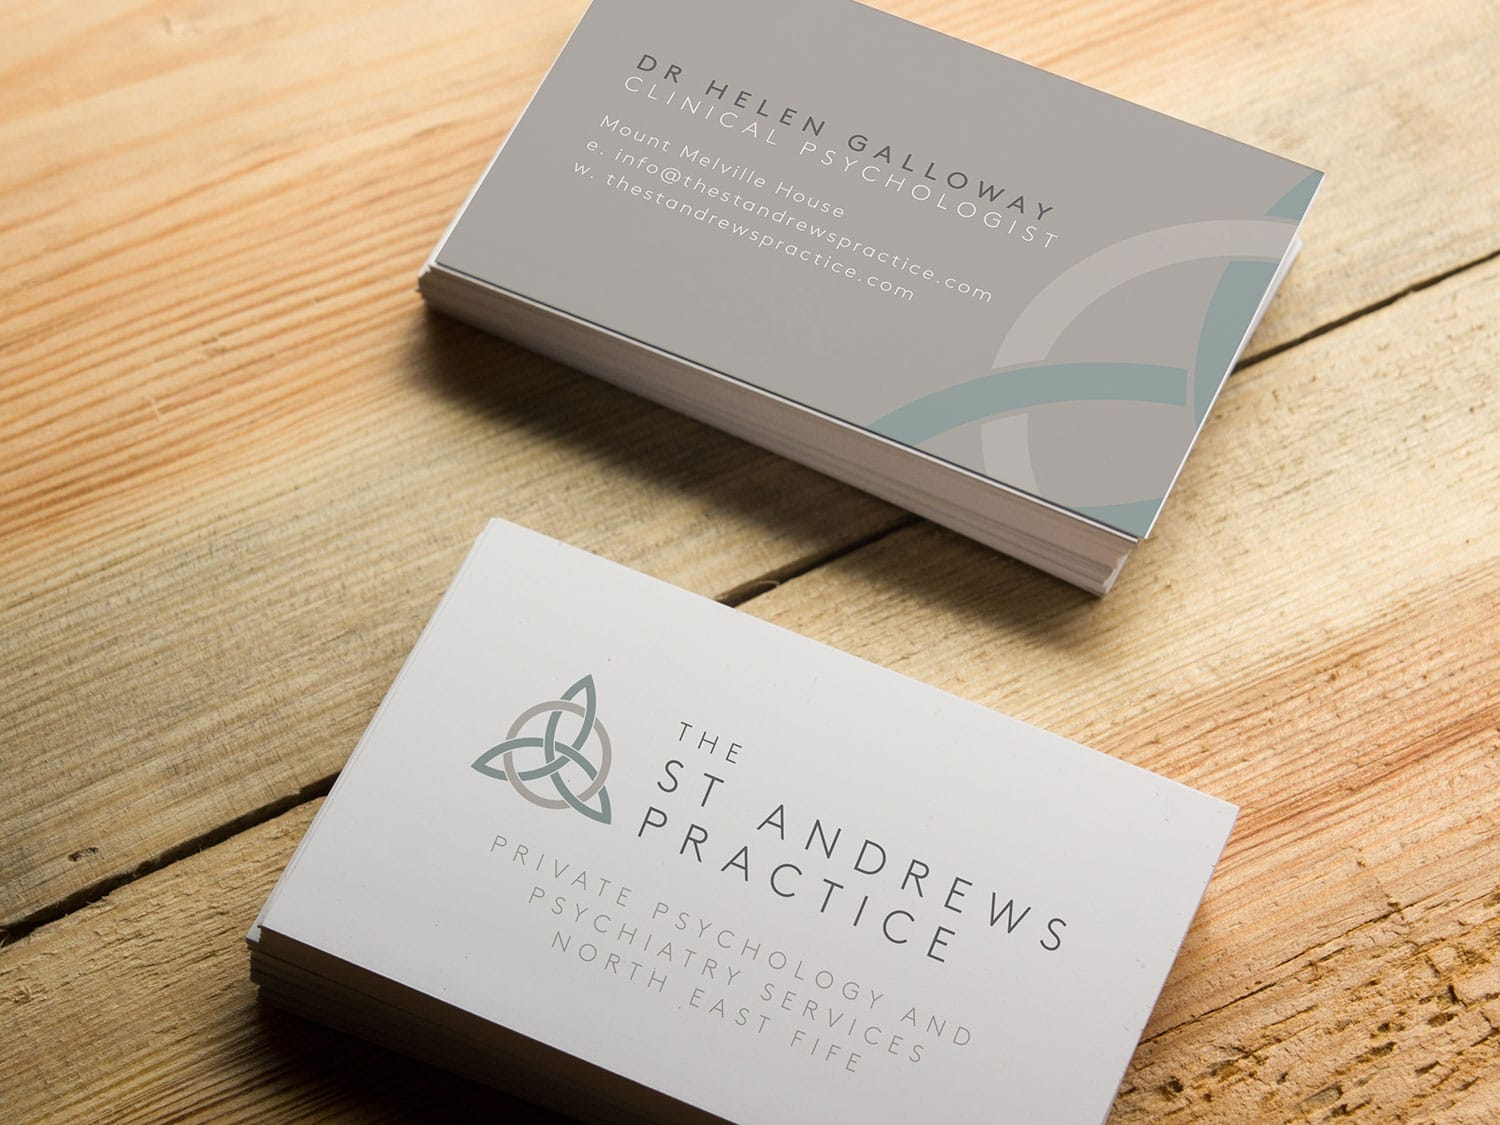 The St Andrews Practice Business Cards